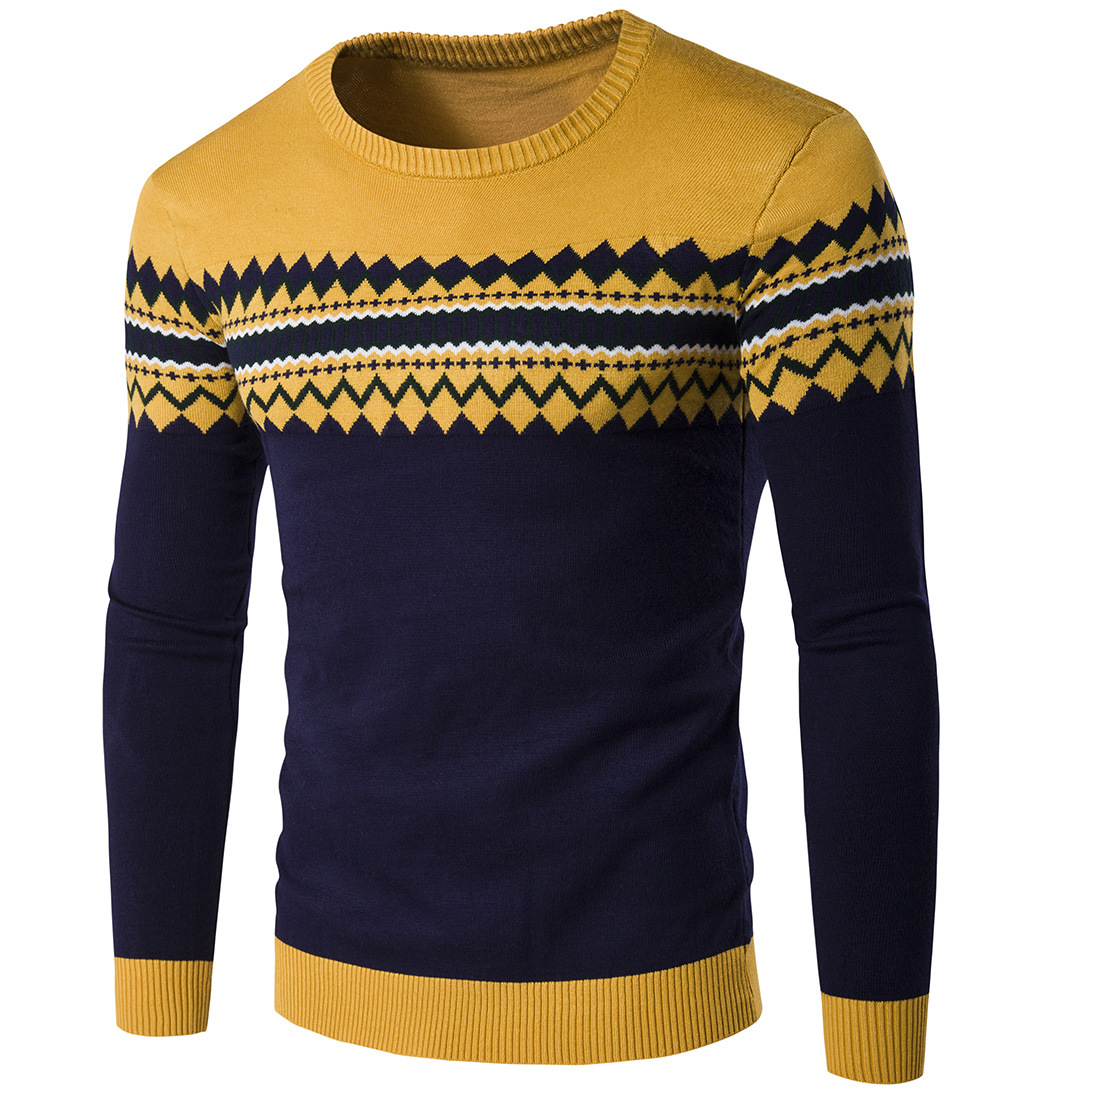 Men's Sweater New Autumn Winter Pullover Men Sweaters Cotton Casual O Neck Sweater Jumpers Thin Male Knitwear Top